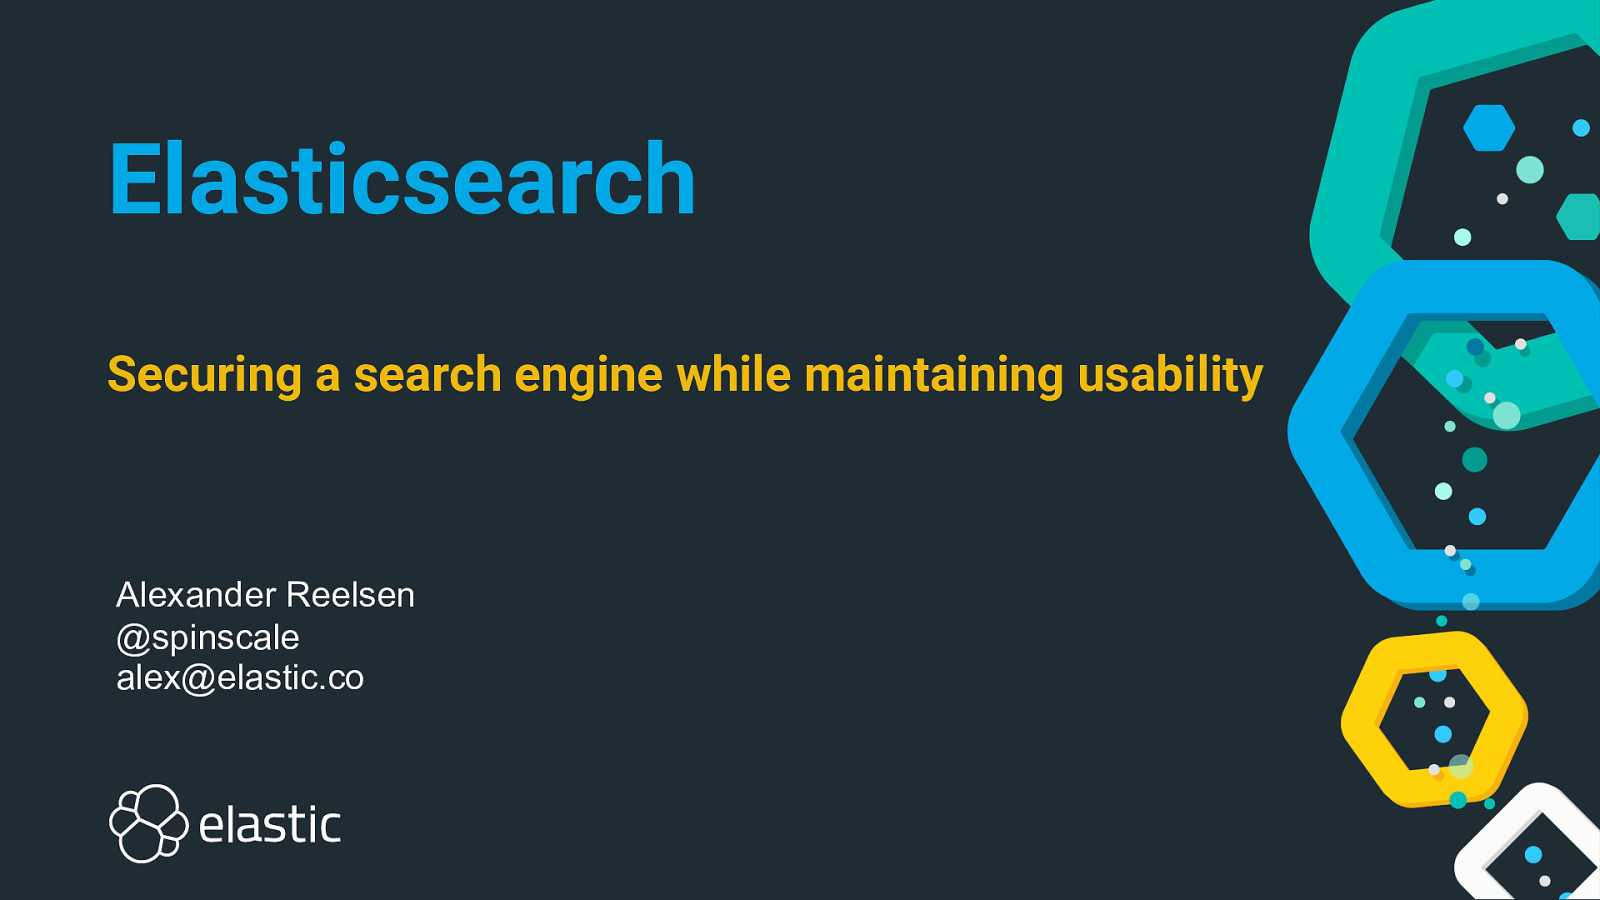 Elasticsearch - Securing software while maintaining usability